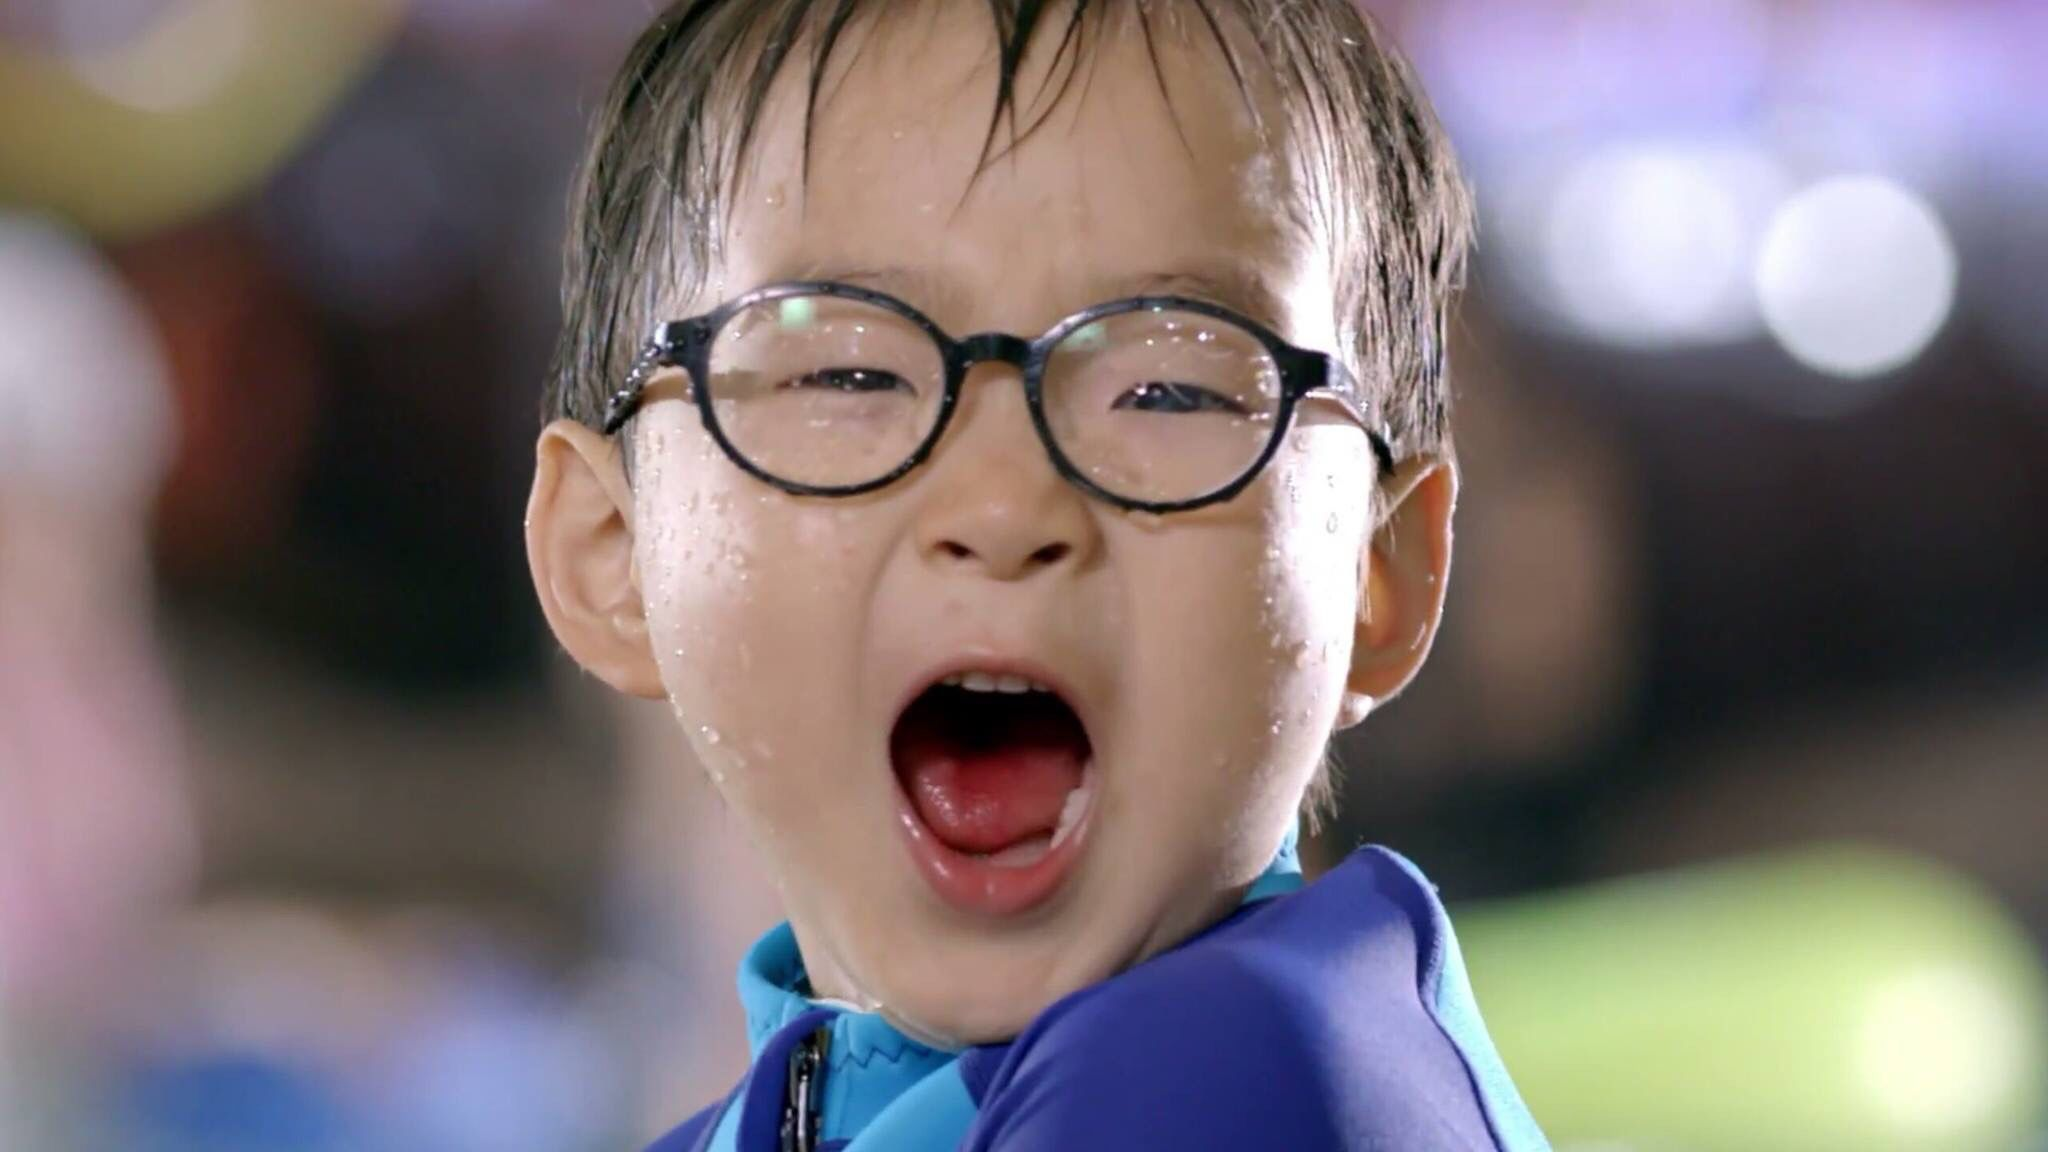 1000 Images About SongTriplets On Pinterest Triplets And Songs